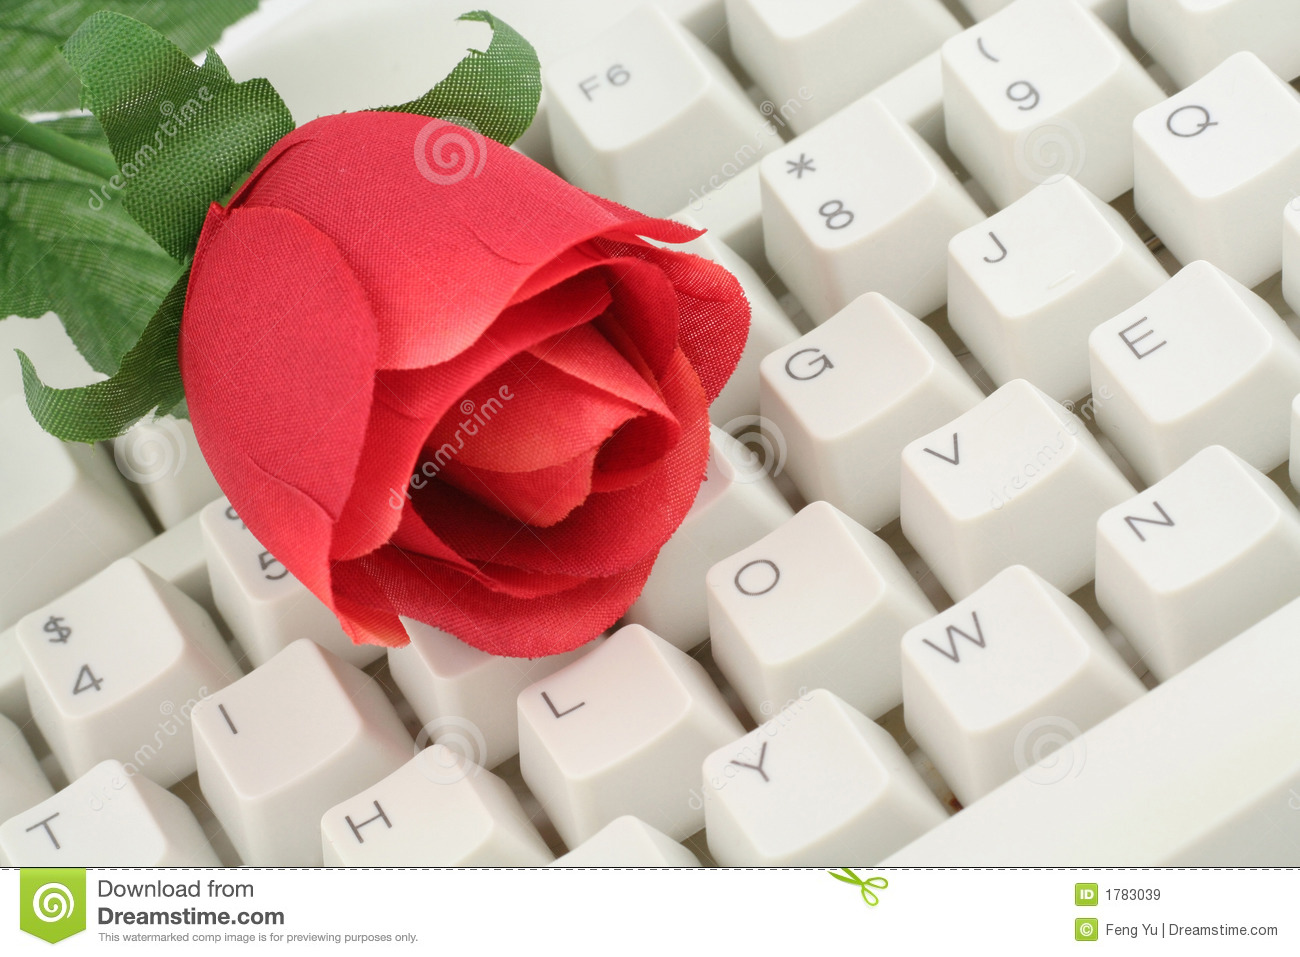 Red Rose And Keyboard Royalty Free Stock Images - Image: 1783039